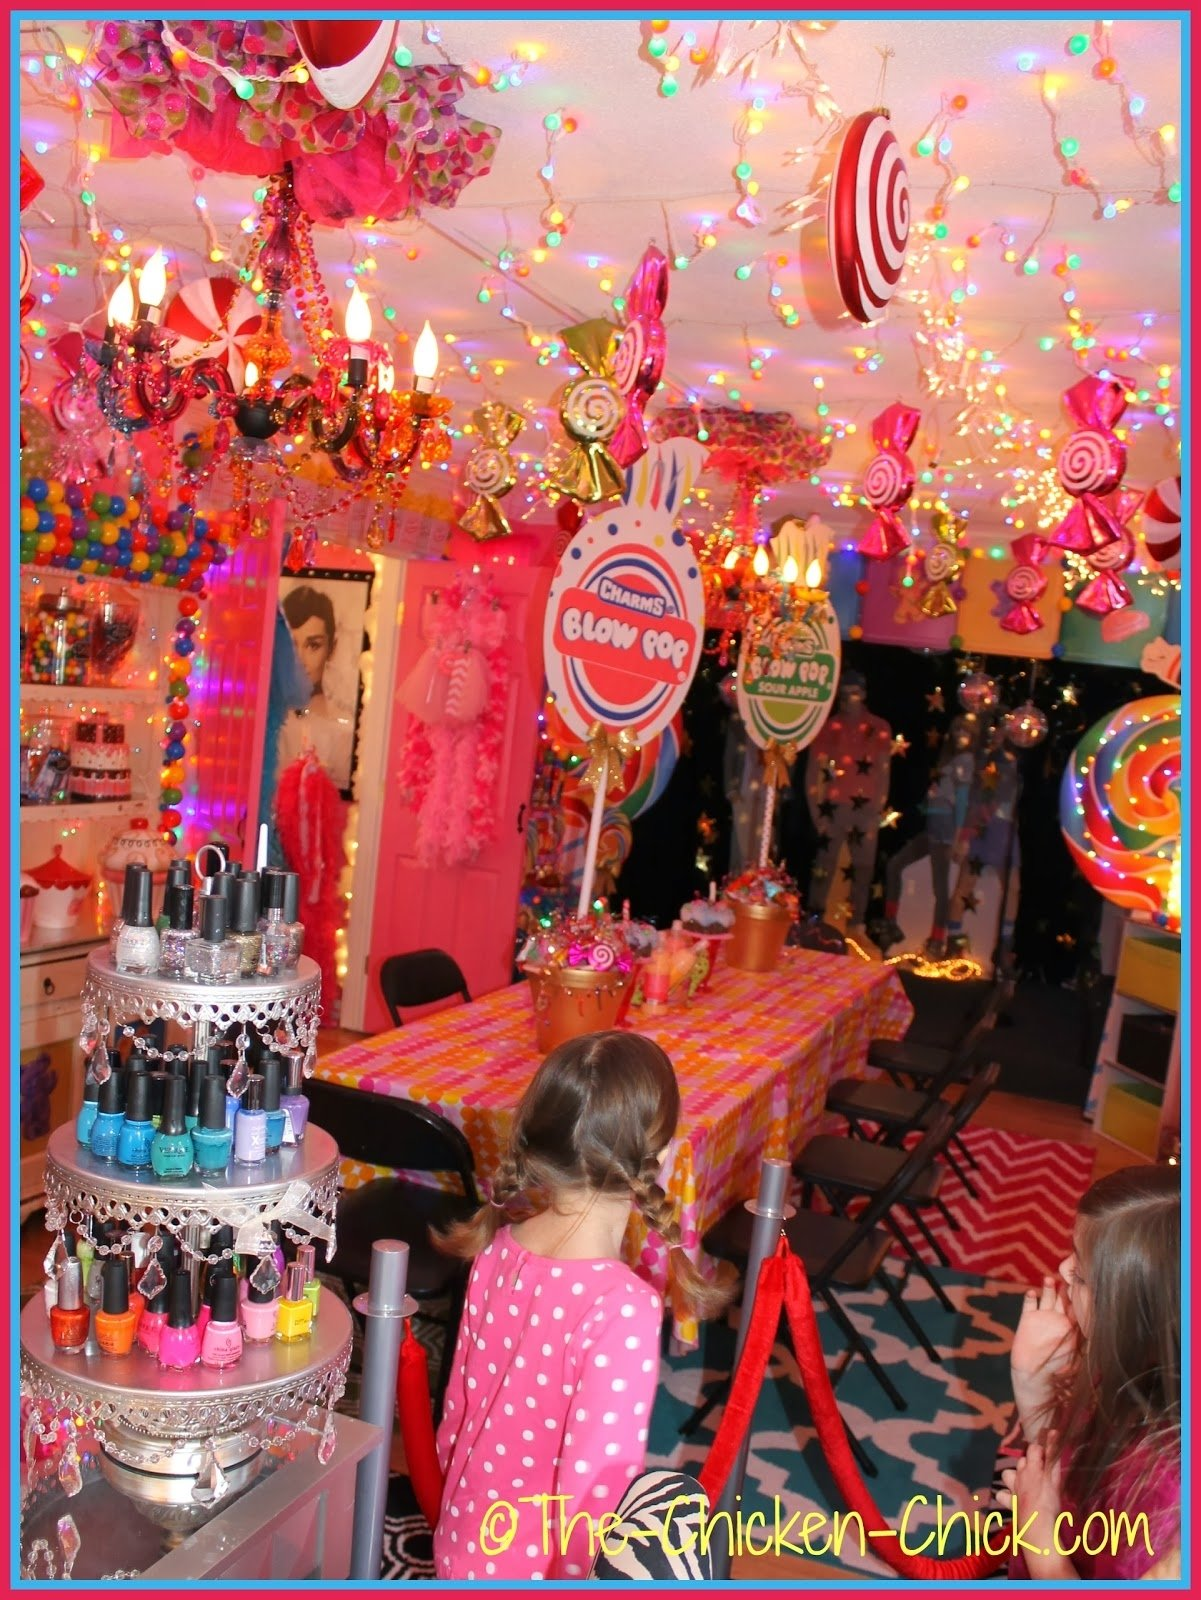 10 Attractive Birthday Party Ideas For 14 Year Olds spa birthday party ideas for 7 year olds pool design ideas 8 2020